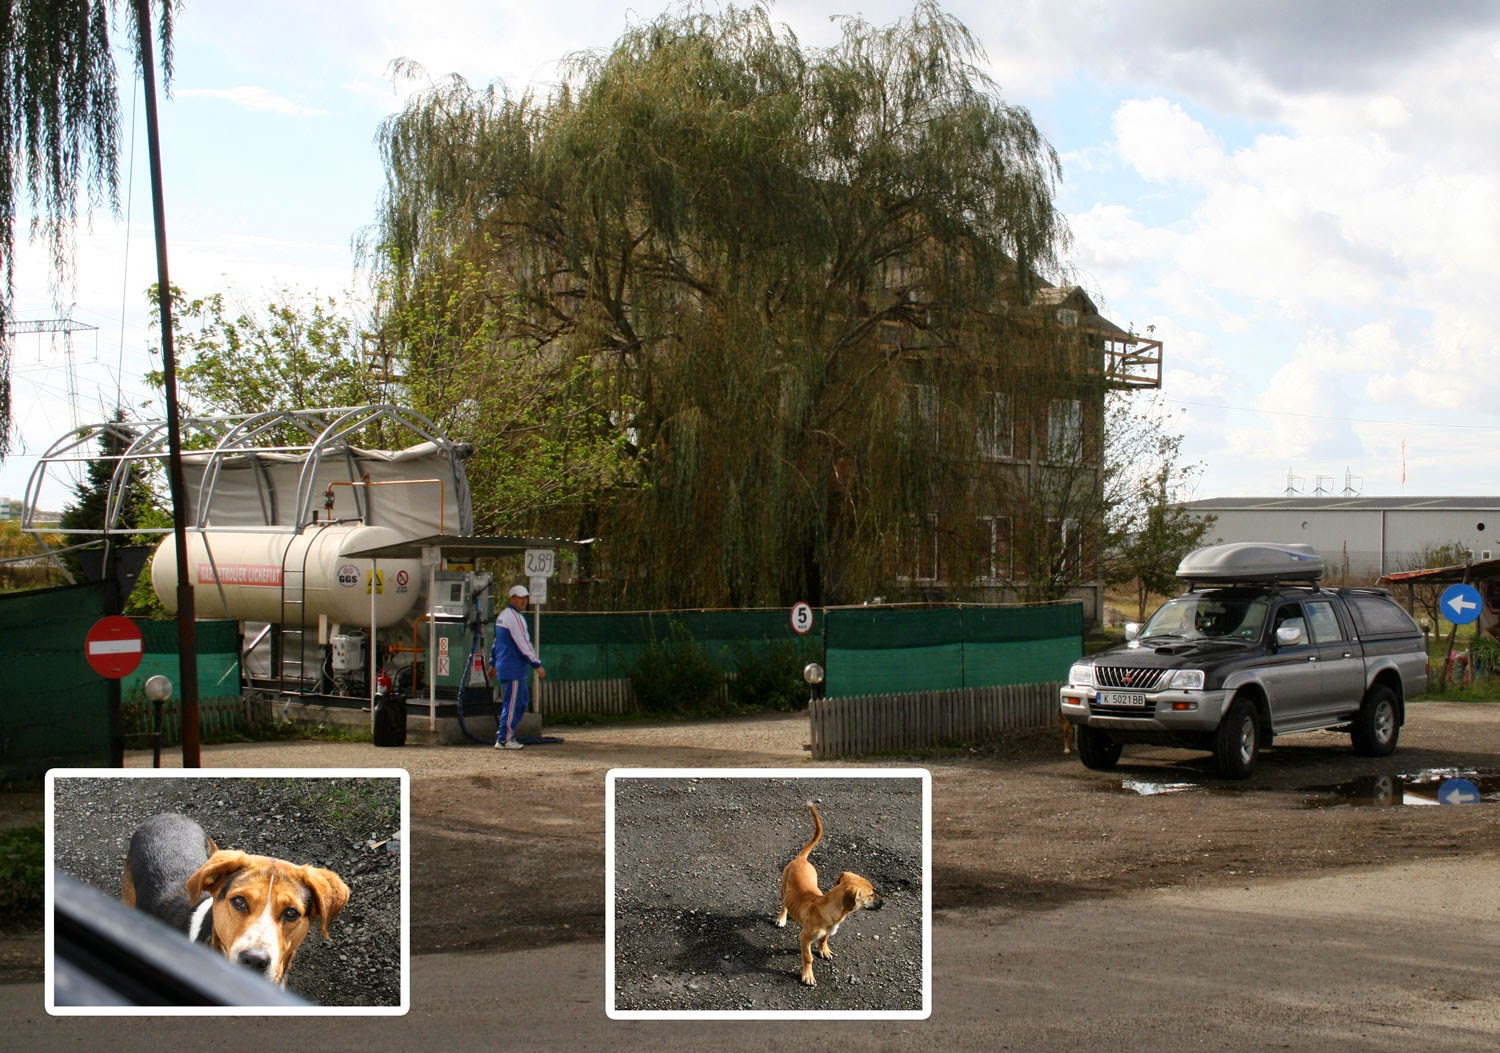 A Romanian service station, and the strays